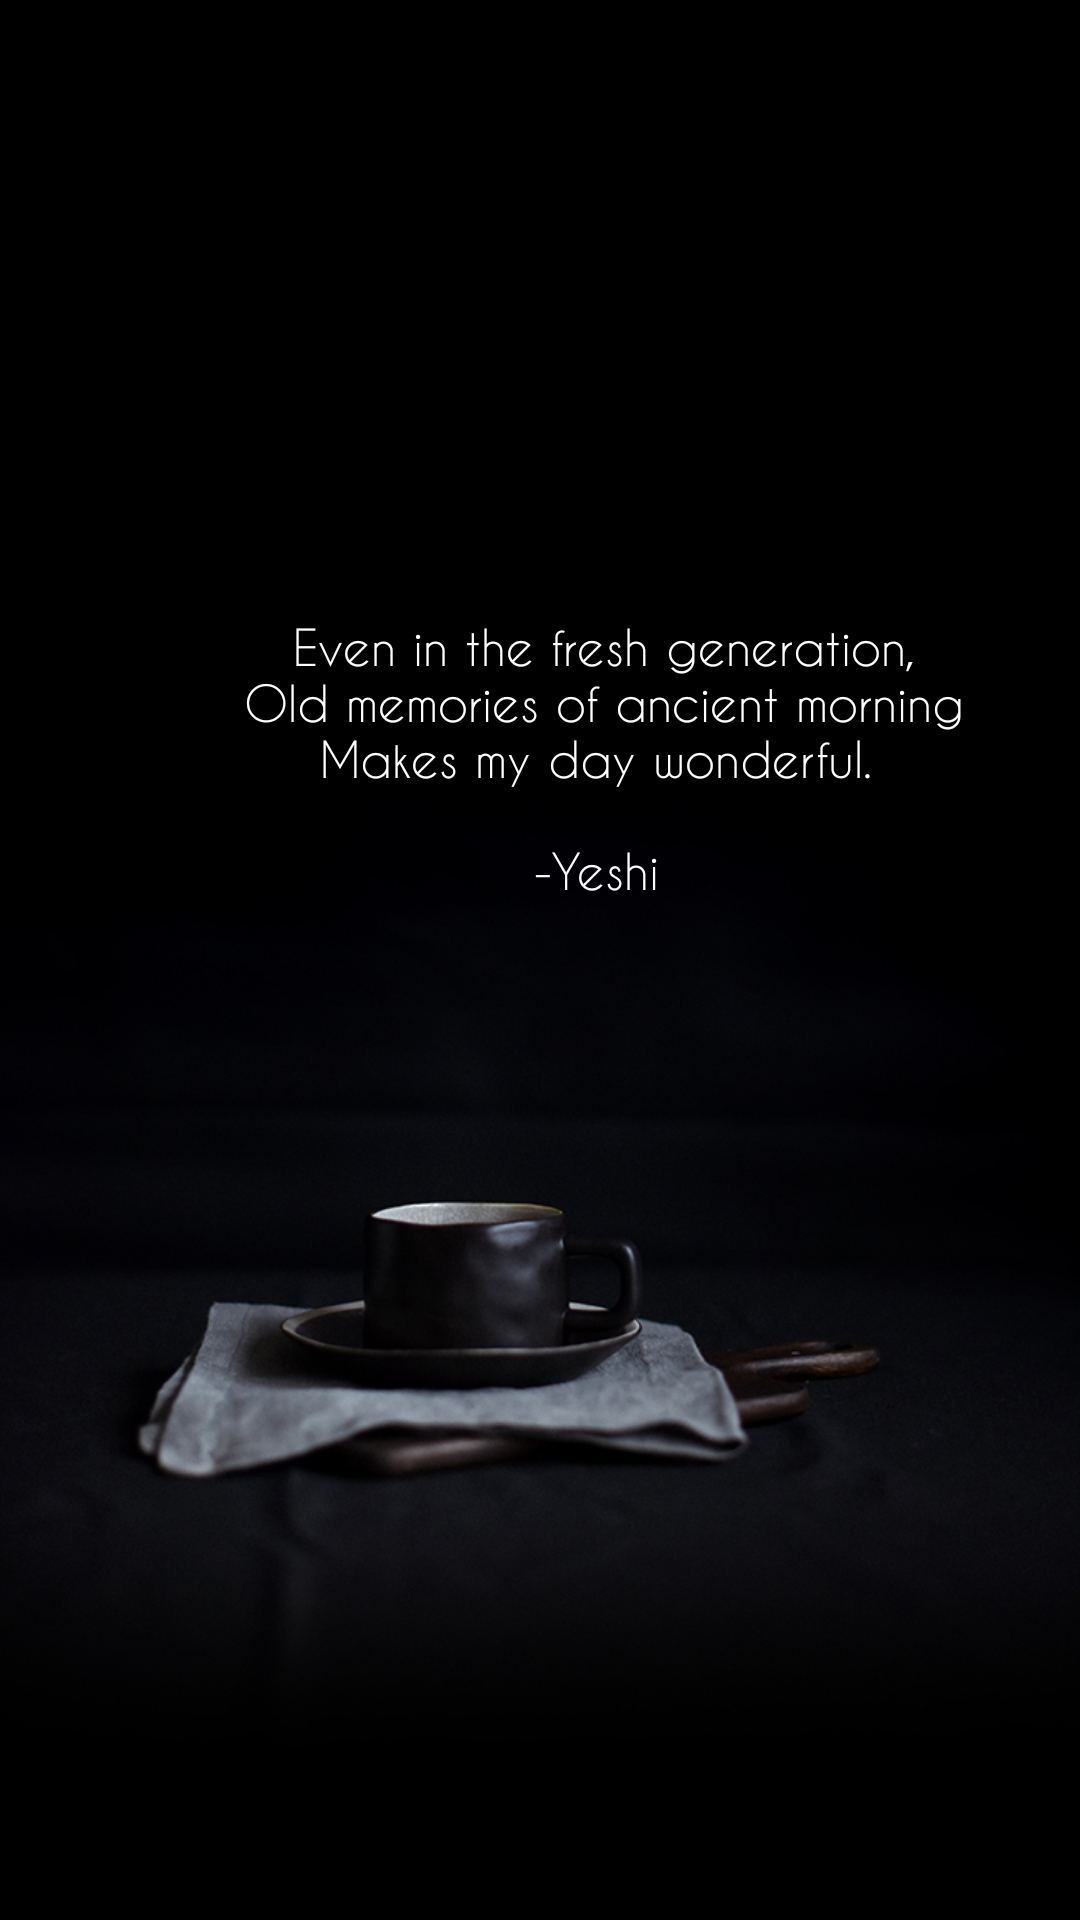 Even in the fresh generation, Old memories of ancient morning Makes my day wonderful.   -Yeshi